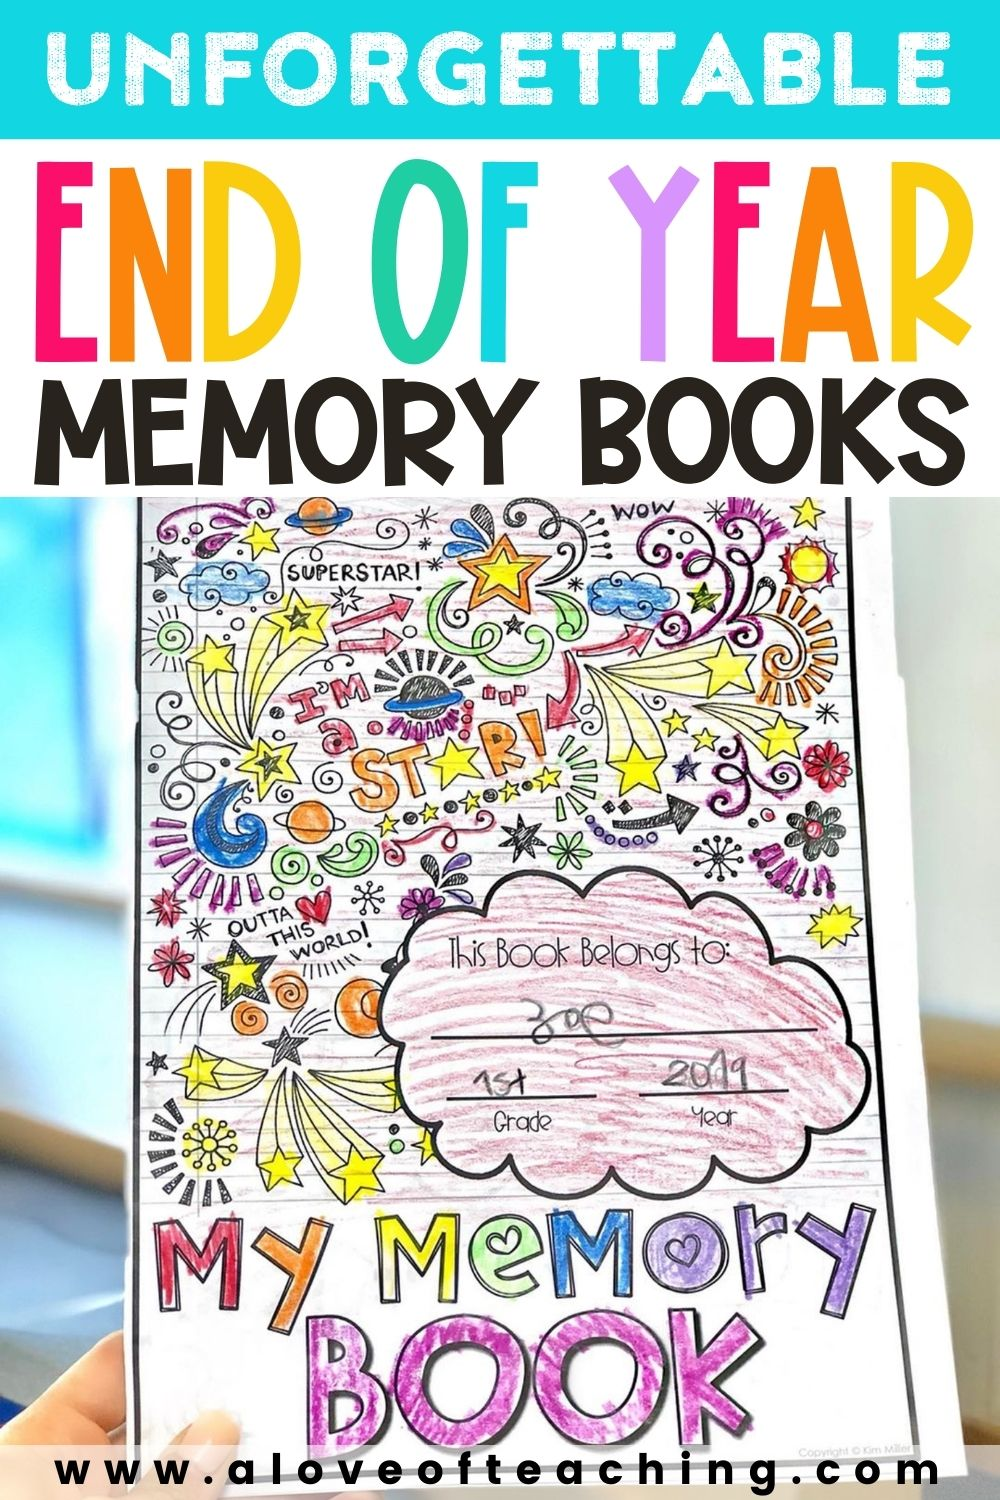 End of Year Memory Books That Are Unforgettable